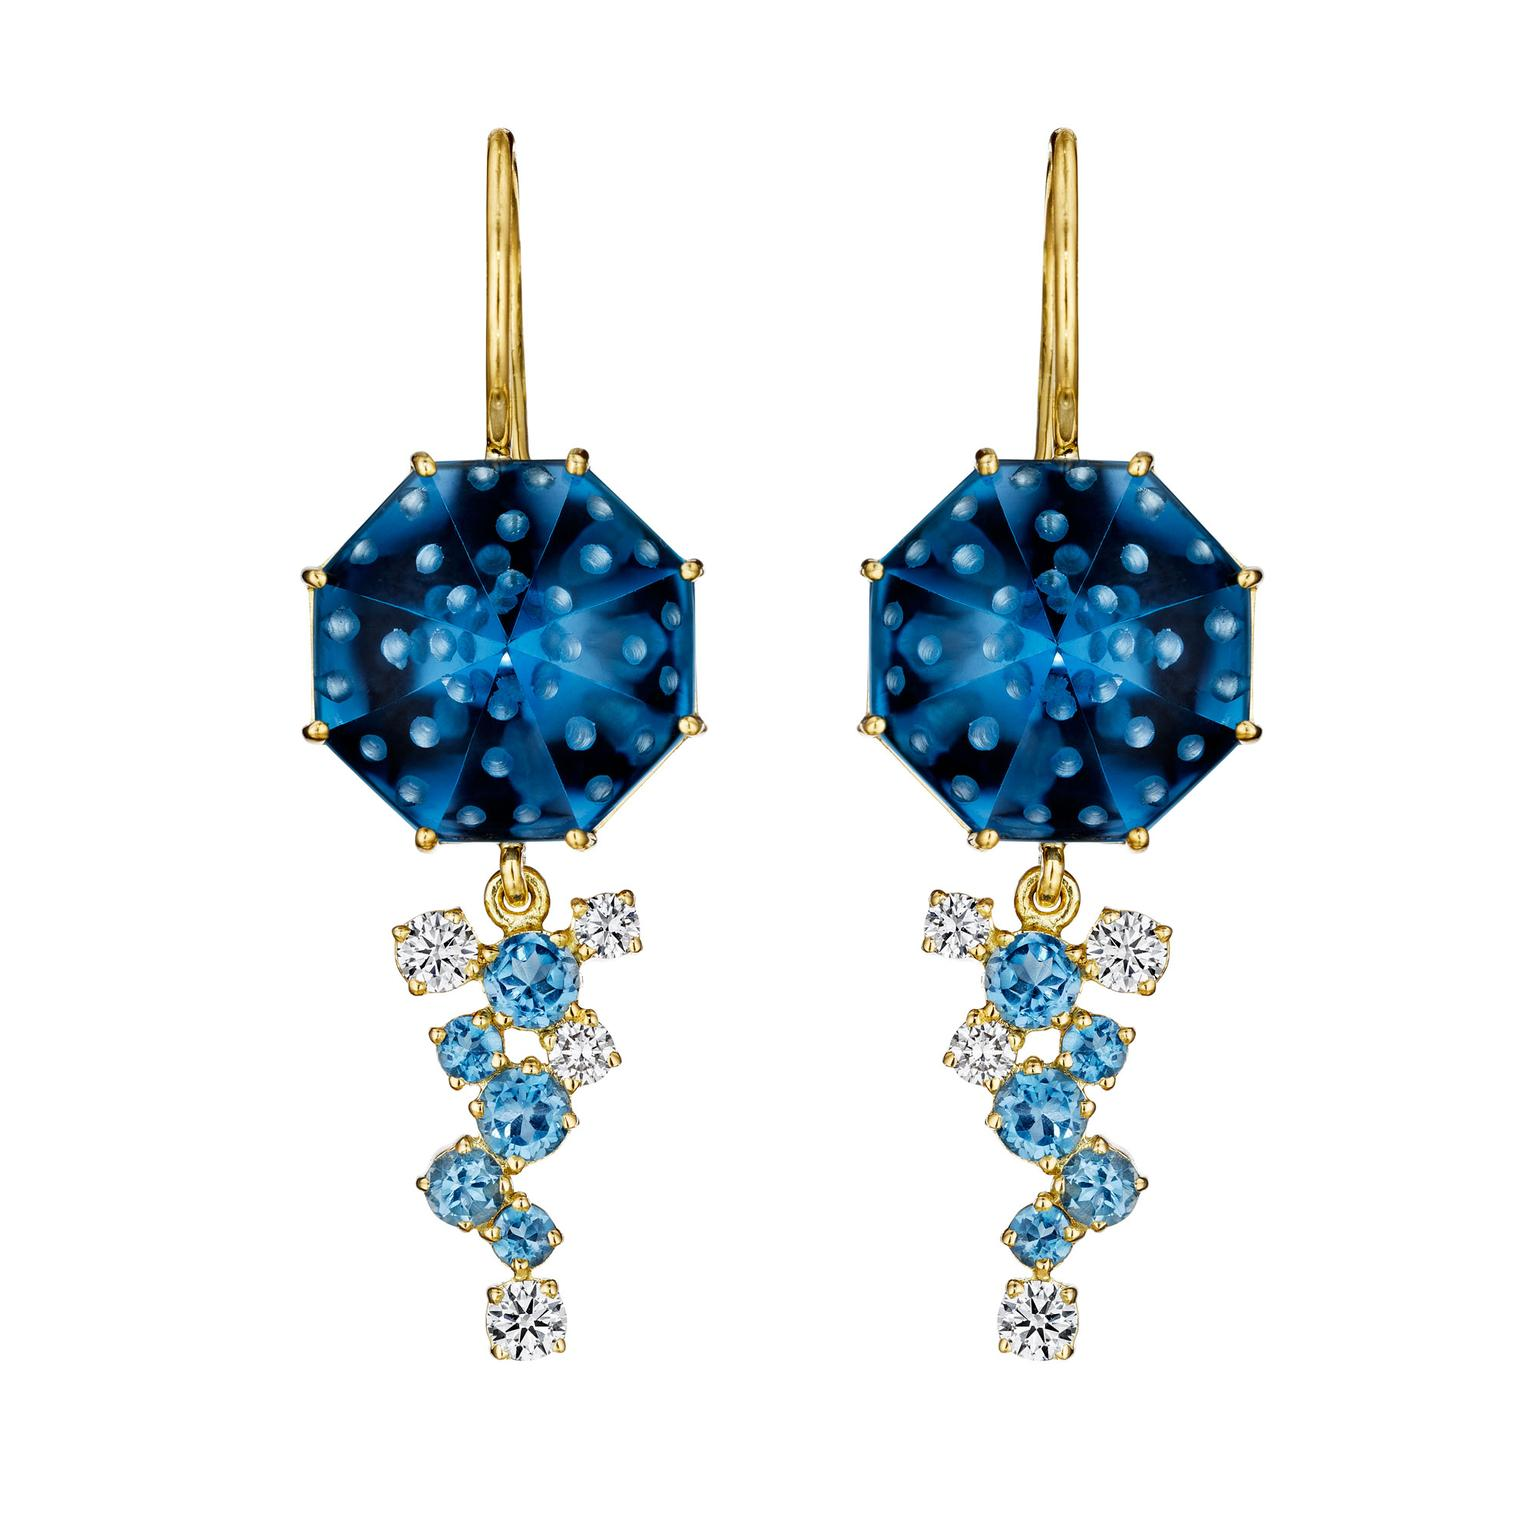 Madstone Design Bubble Ice blue topaz earrings